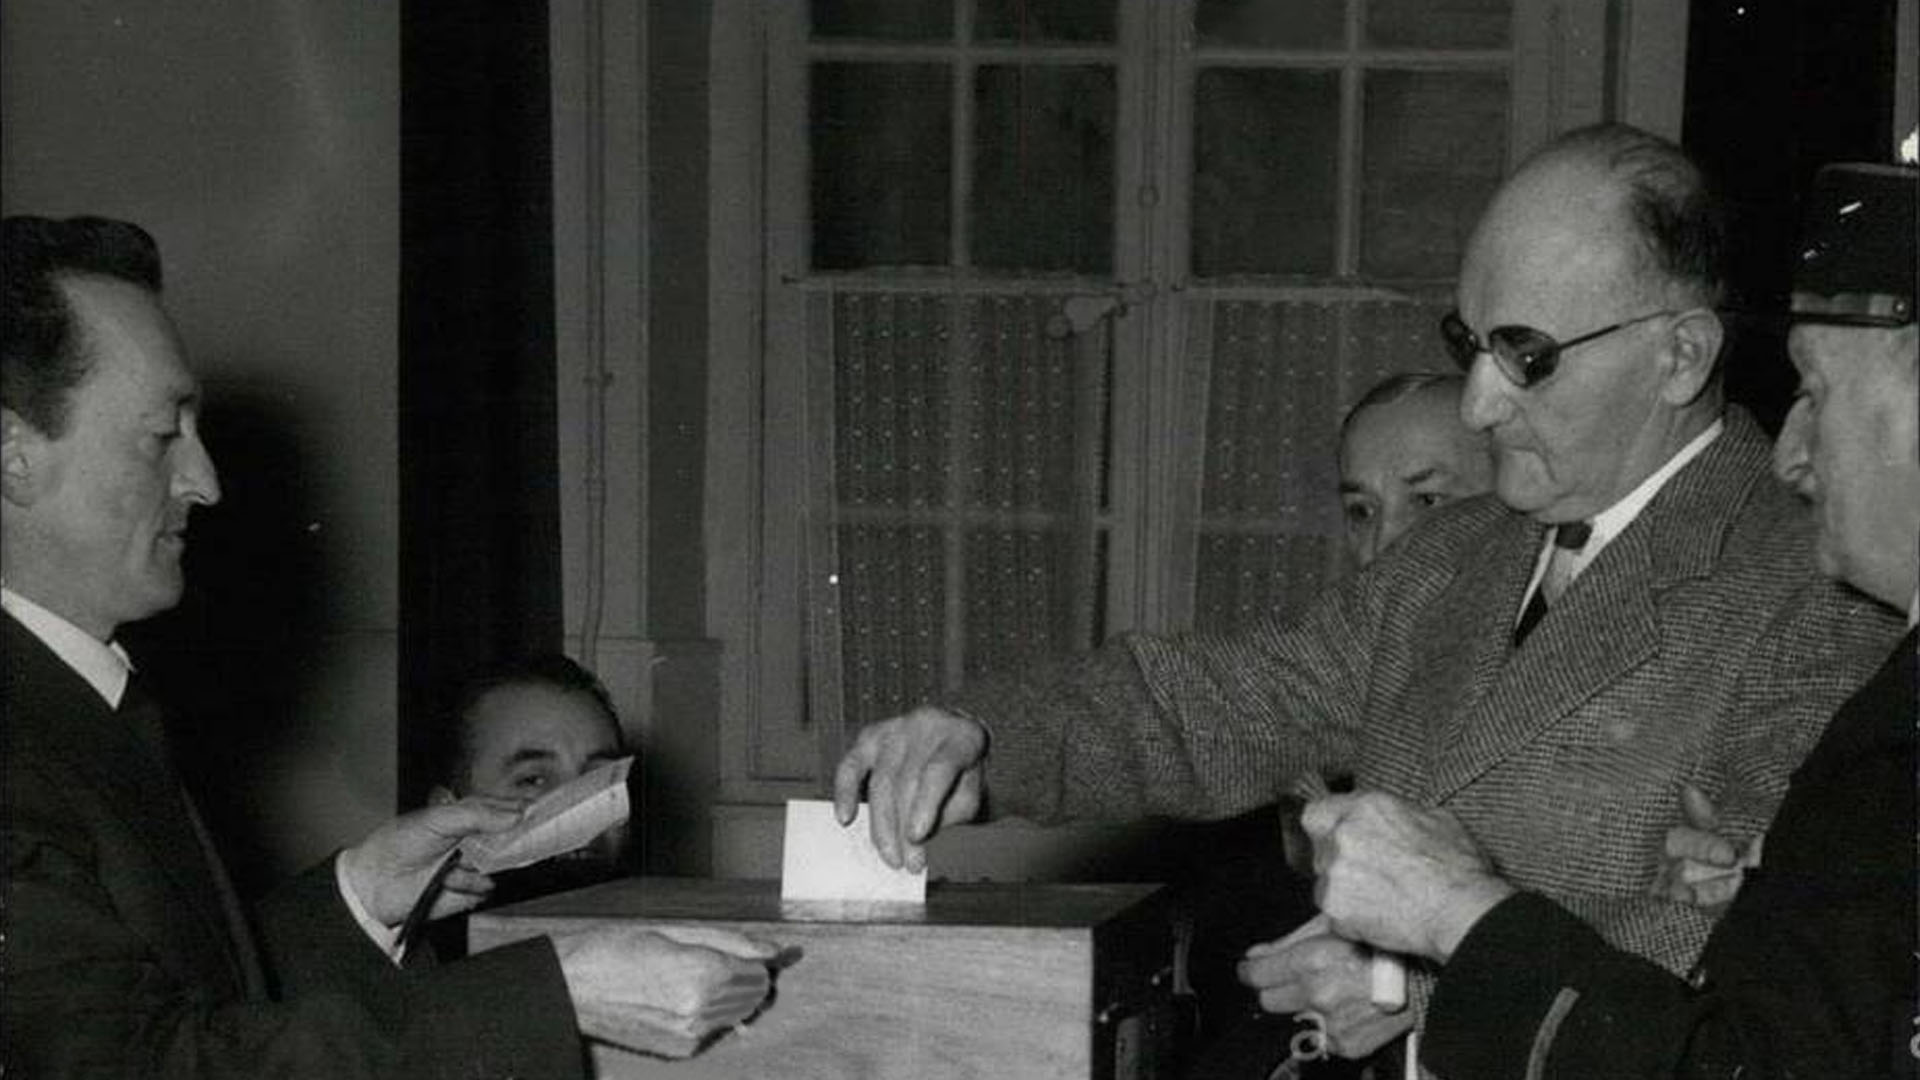 Incorporation In Voting Ballots To Aid The Participation Of The Blind In Electoral Process